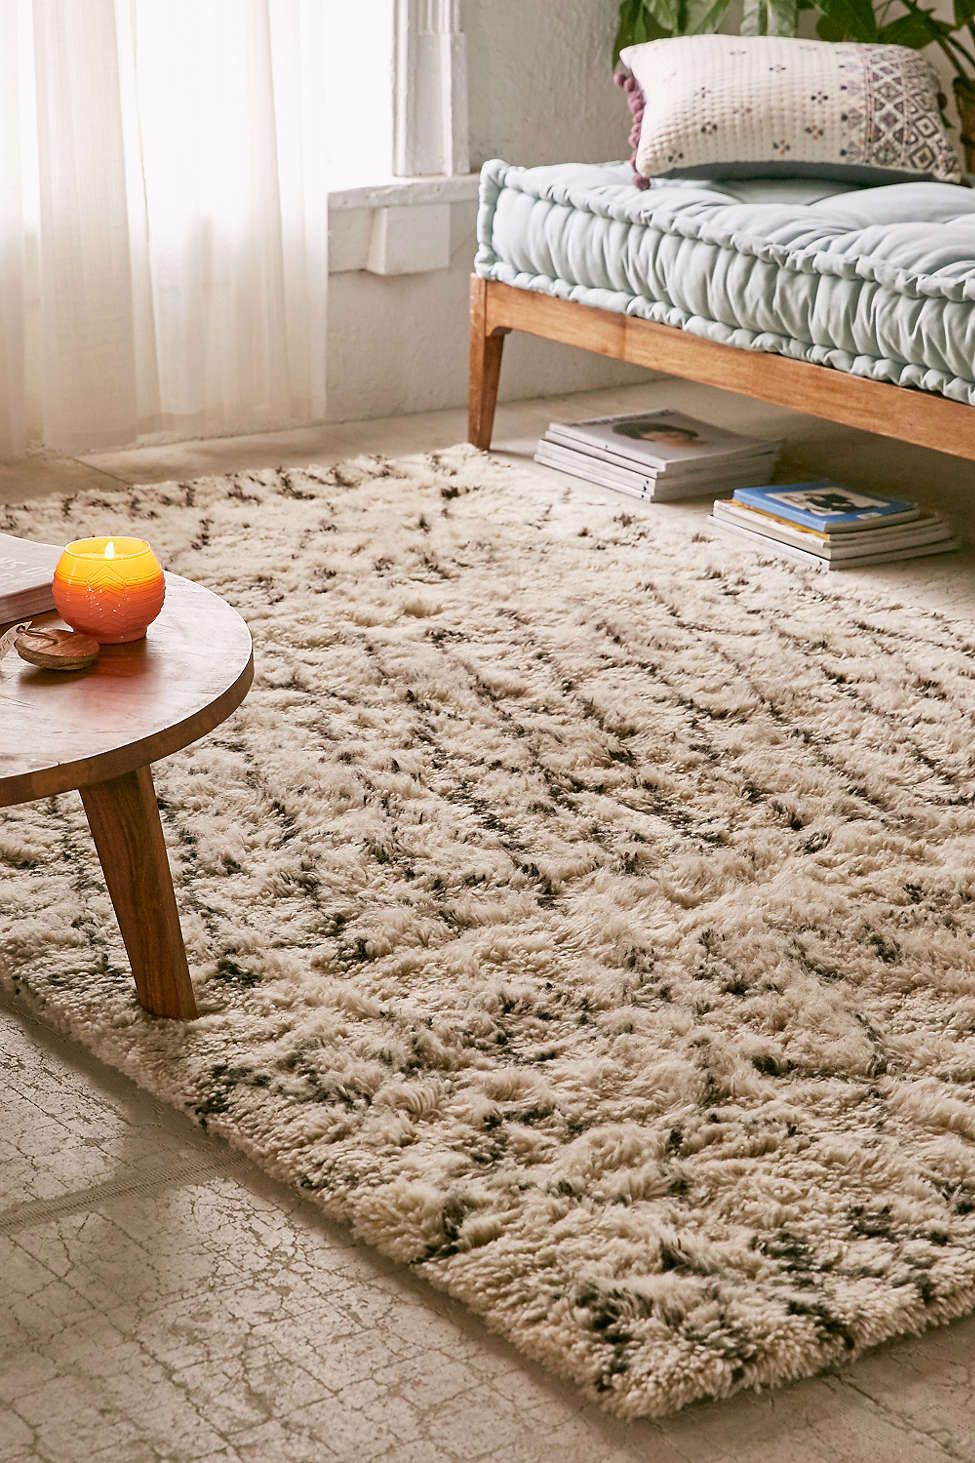 cassadaga tufted shag rug | urban outfitters, awesome and urban